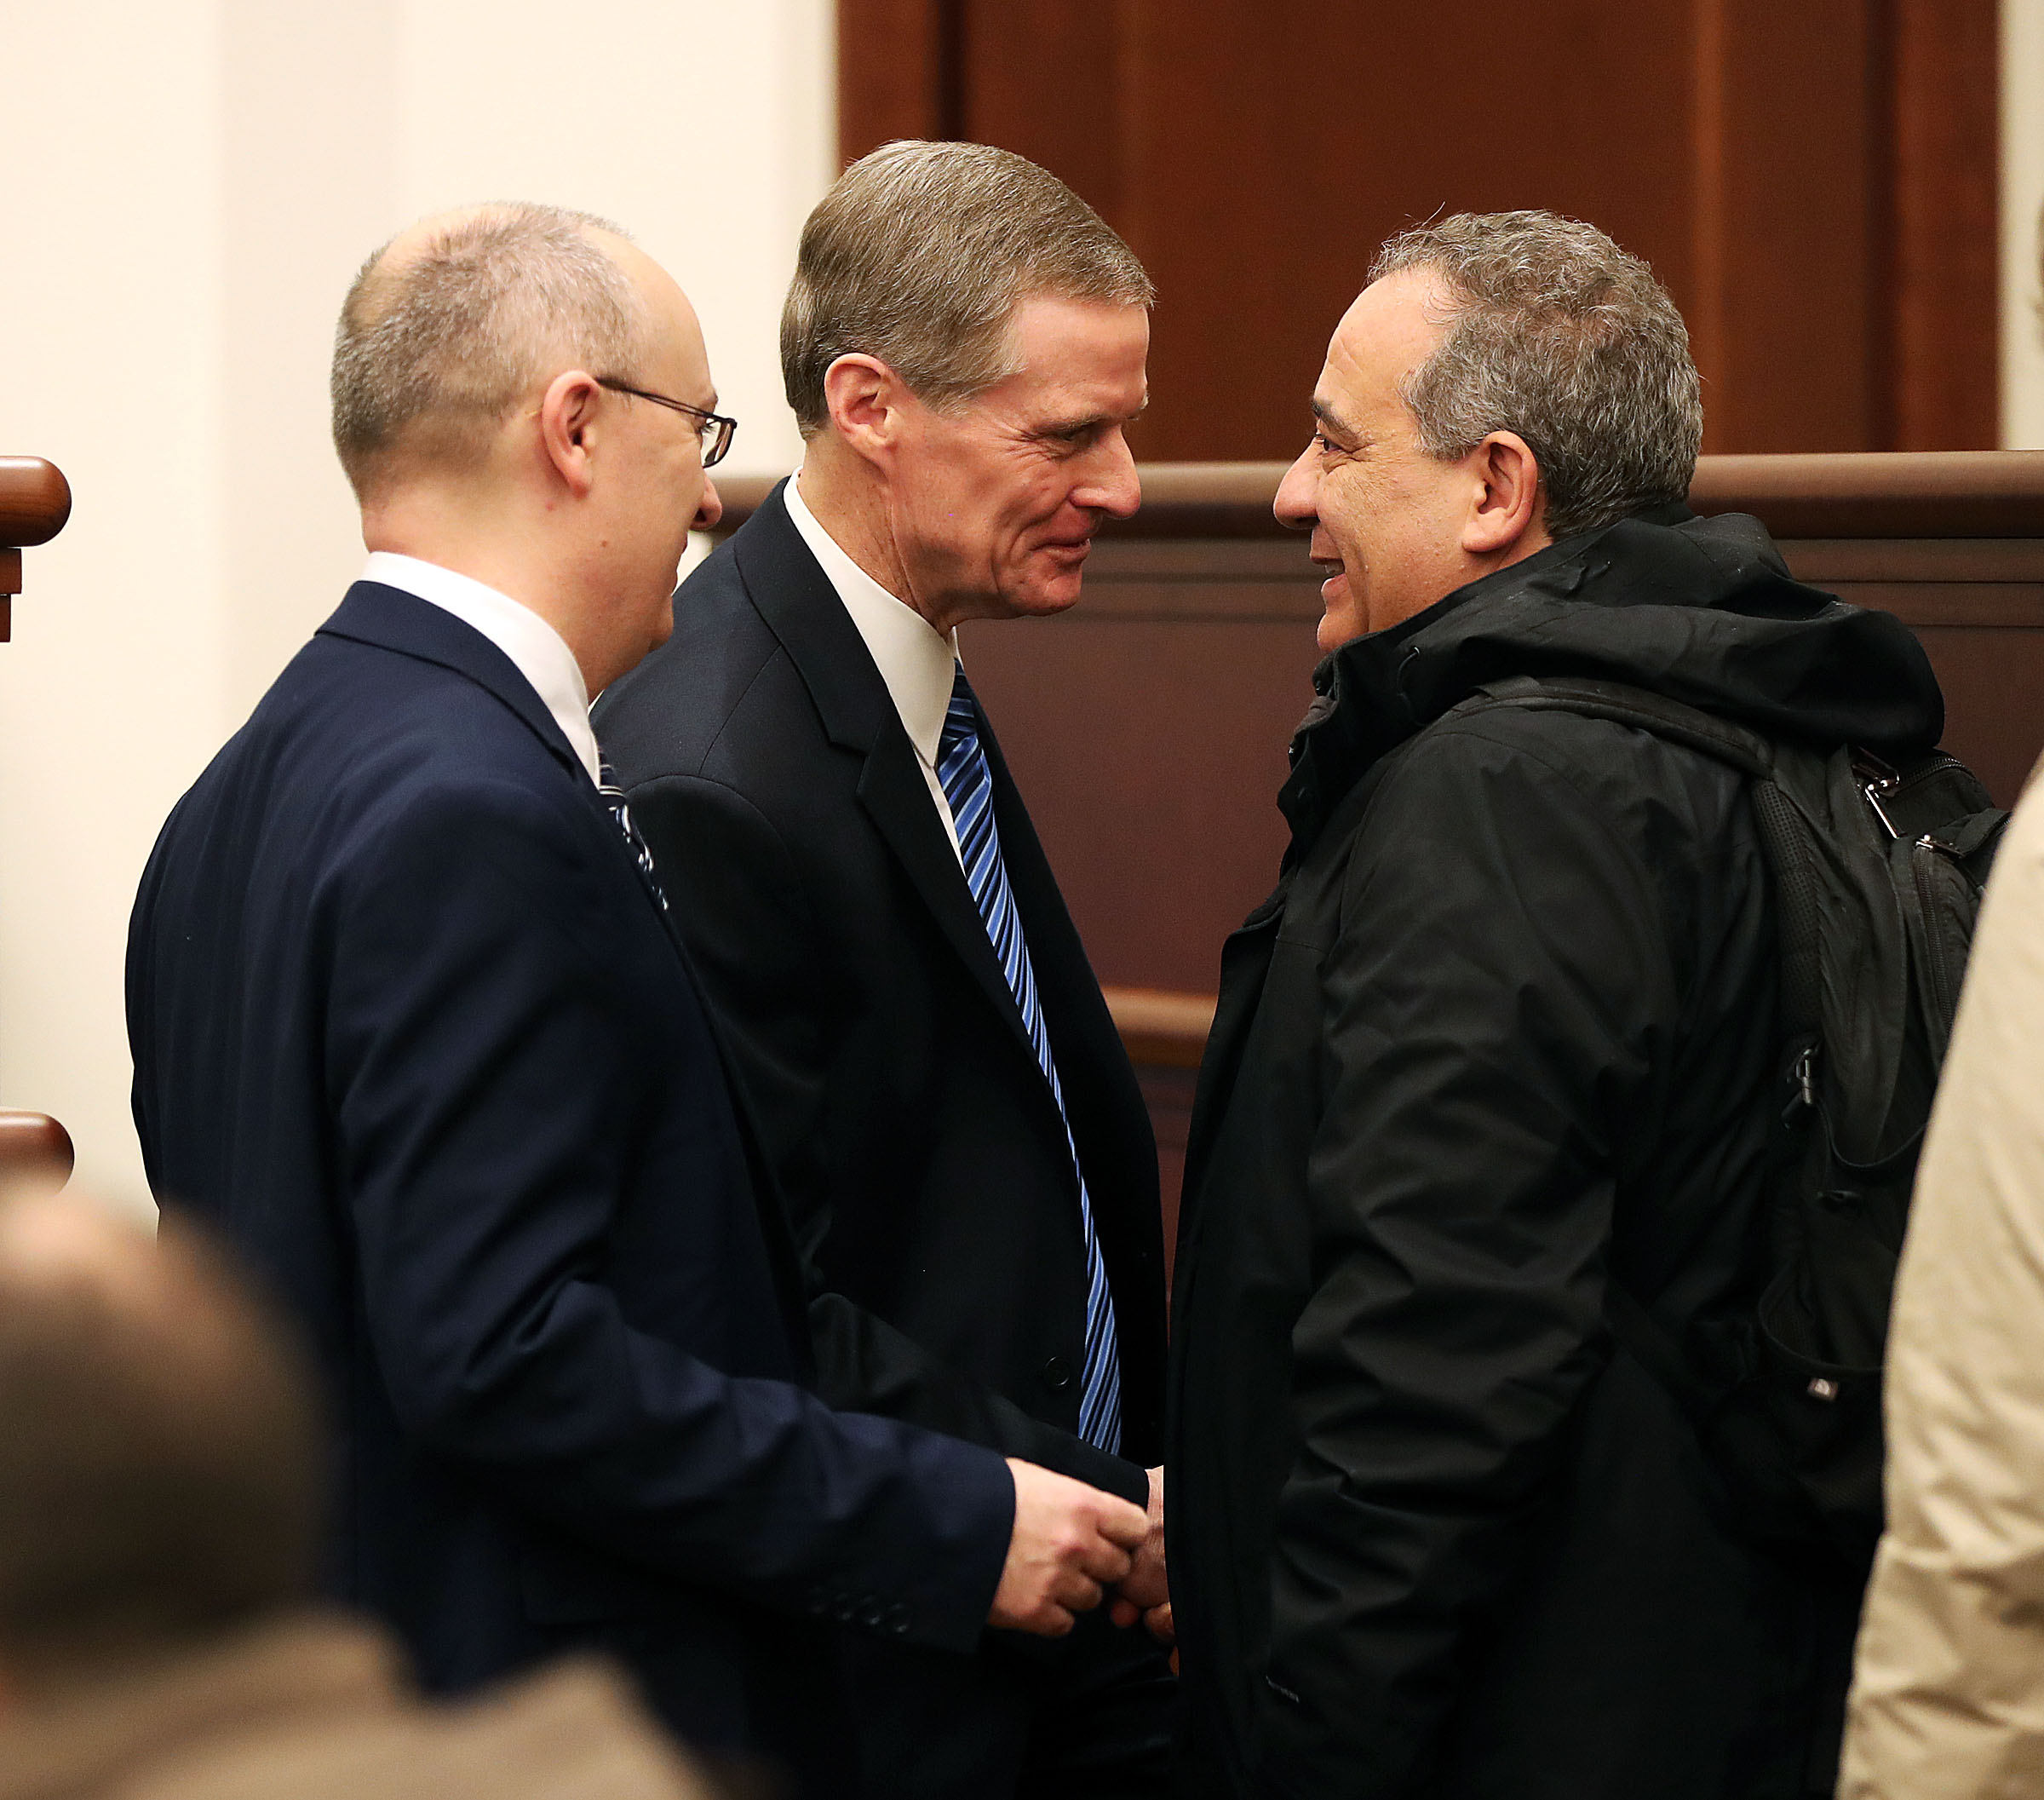 Elder Alessandro Dini-Ciacci, Area Seventy, left, and Elder David A. Bednar of the Quorum of the Twelve Apostles of The Church of Jesus Christ of Latter-day Saints greet President Giovanni Caudo, president of the Third Municipality of Rome, before a tour of the Rome Italy Temple on Monday, Jan. 14, 2019.